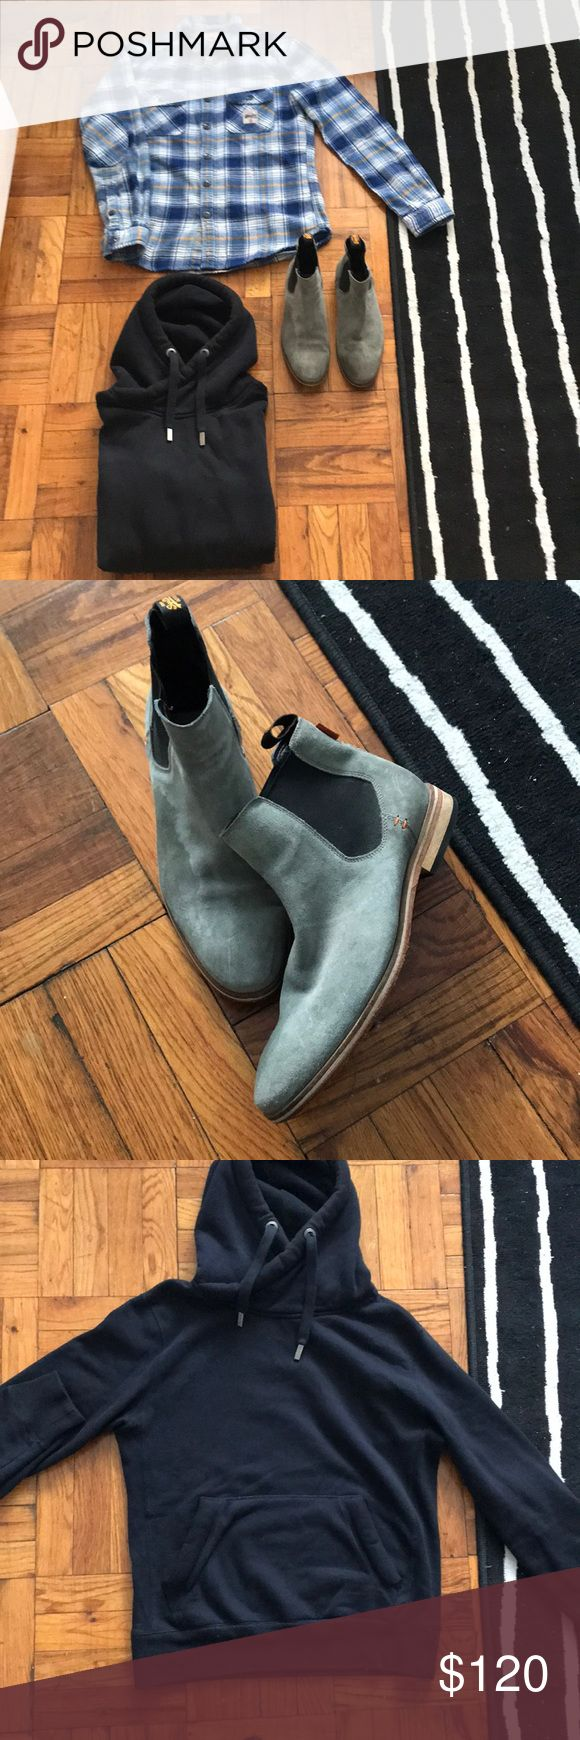 Sueprdry fit combo Superdry Chelsea boots-Size 9 US Worn but they are Suade. Suade cleaner works on them.  Superdry Navy Blue Hoodie Size M Crossover hood detail. Metal string tips detailing.  Superdry wool size M button down. Thick wool quality button down. Superdry Tops Button Down Shirts